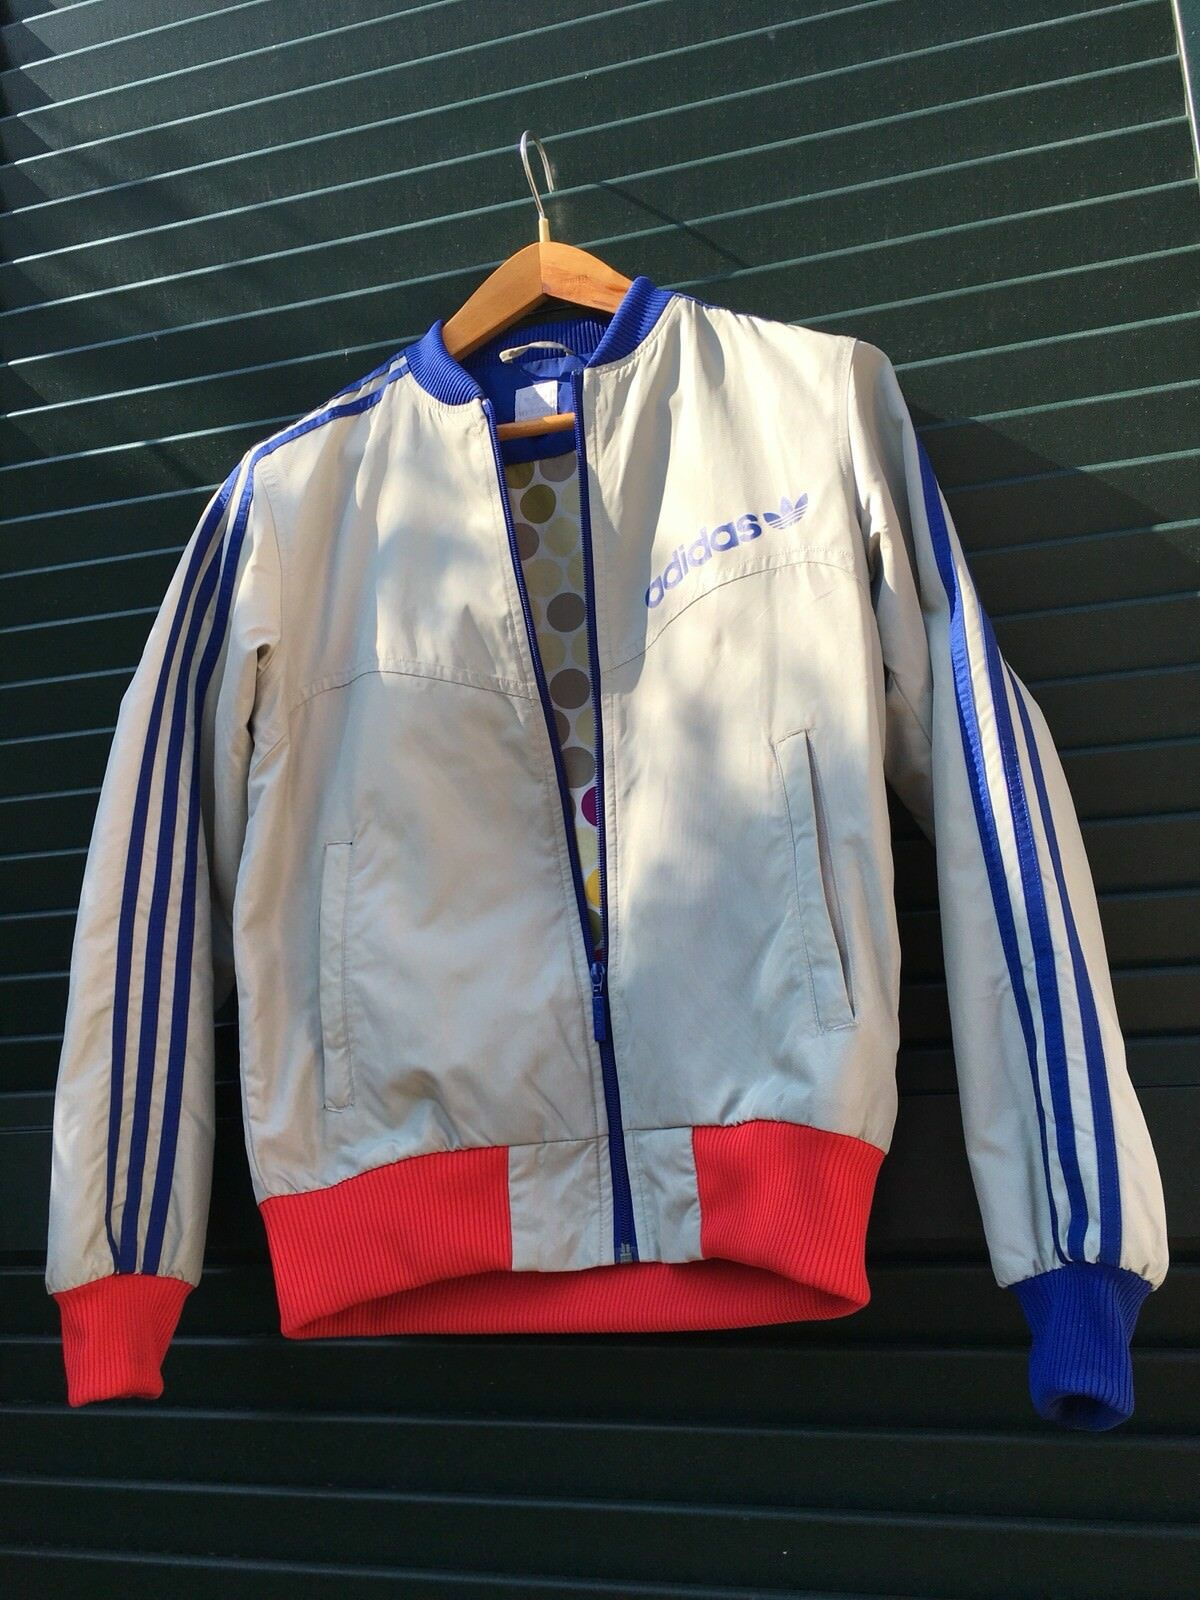 Adidas veste XS S resume collection 1980 year 2004 vintage nouveau GIACCA 80's